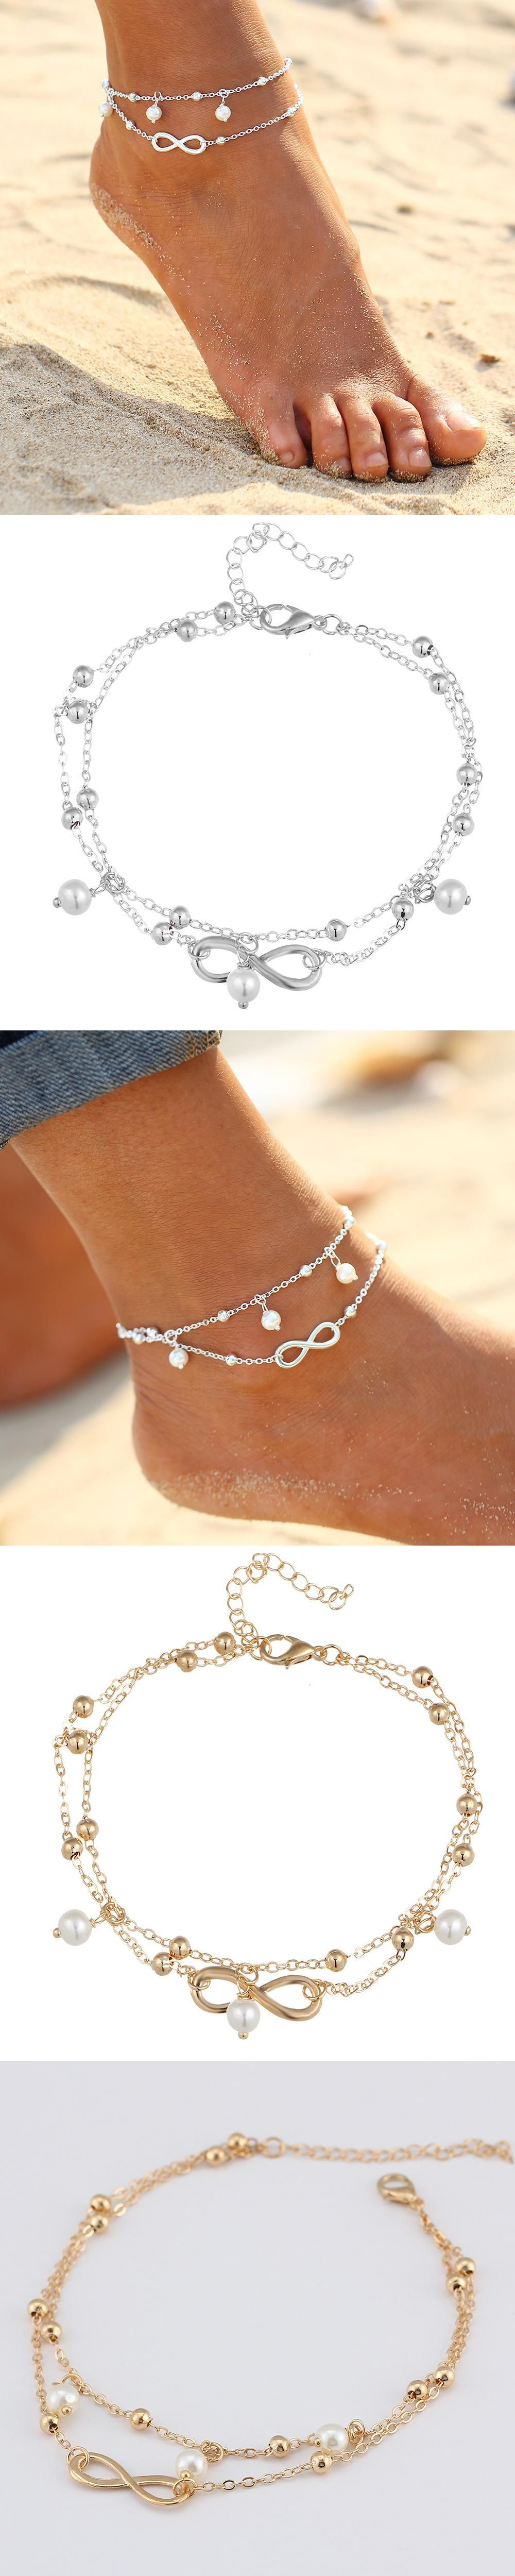 barefoot foot beach weddingbridal boho il woman sandals jewelry anklet listing zoom fullxfull